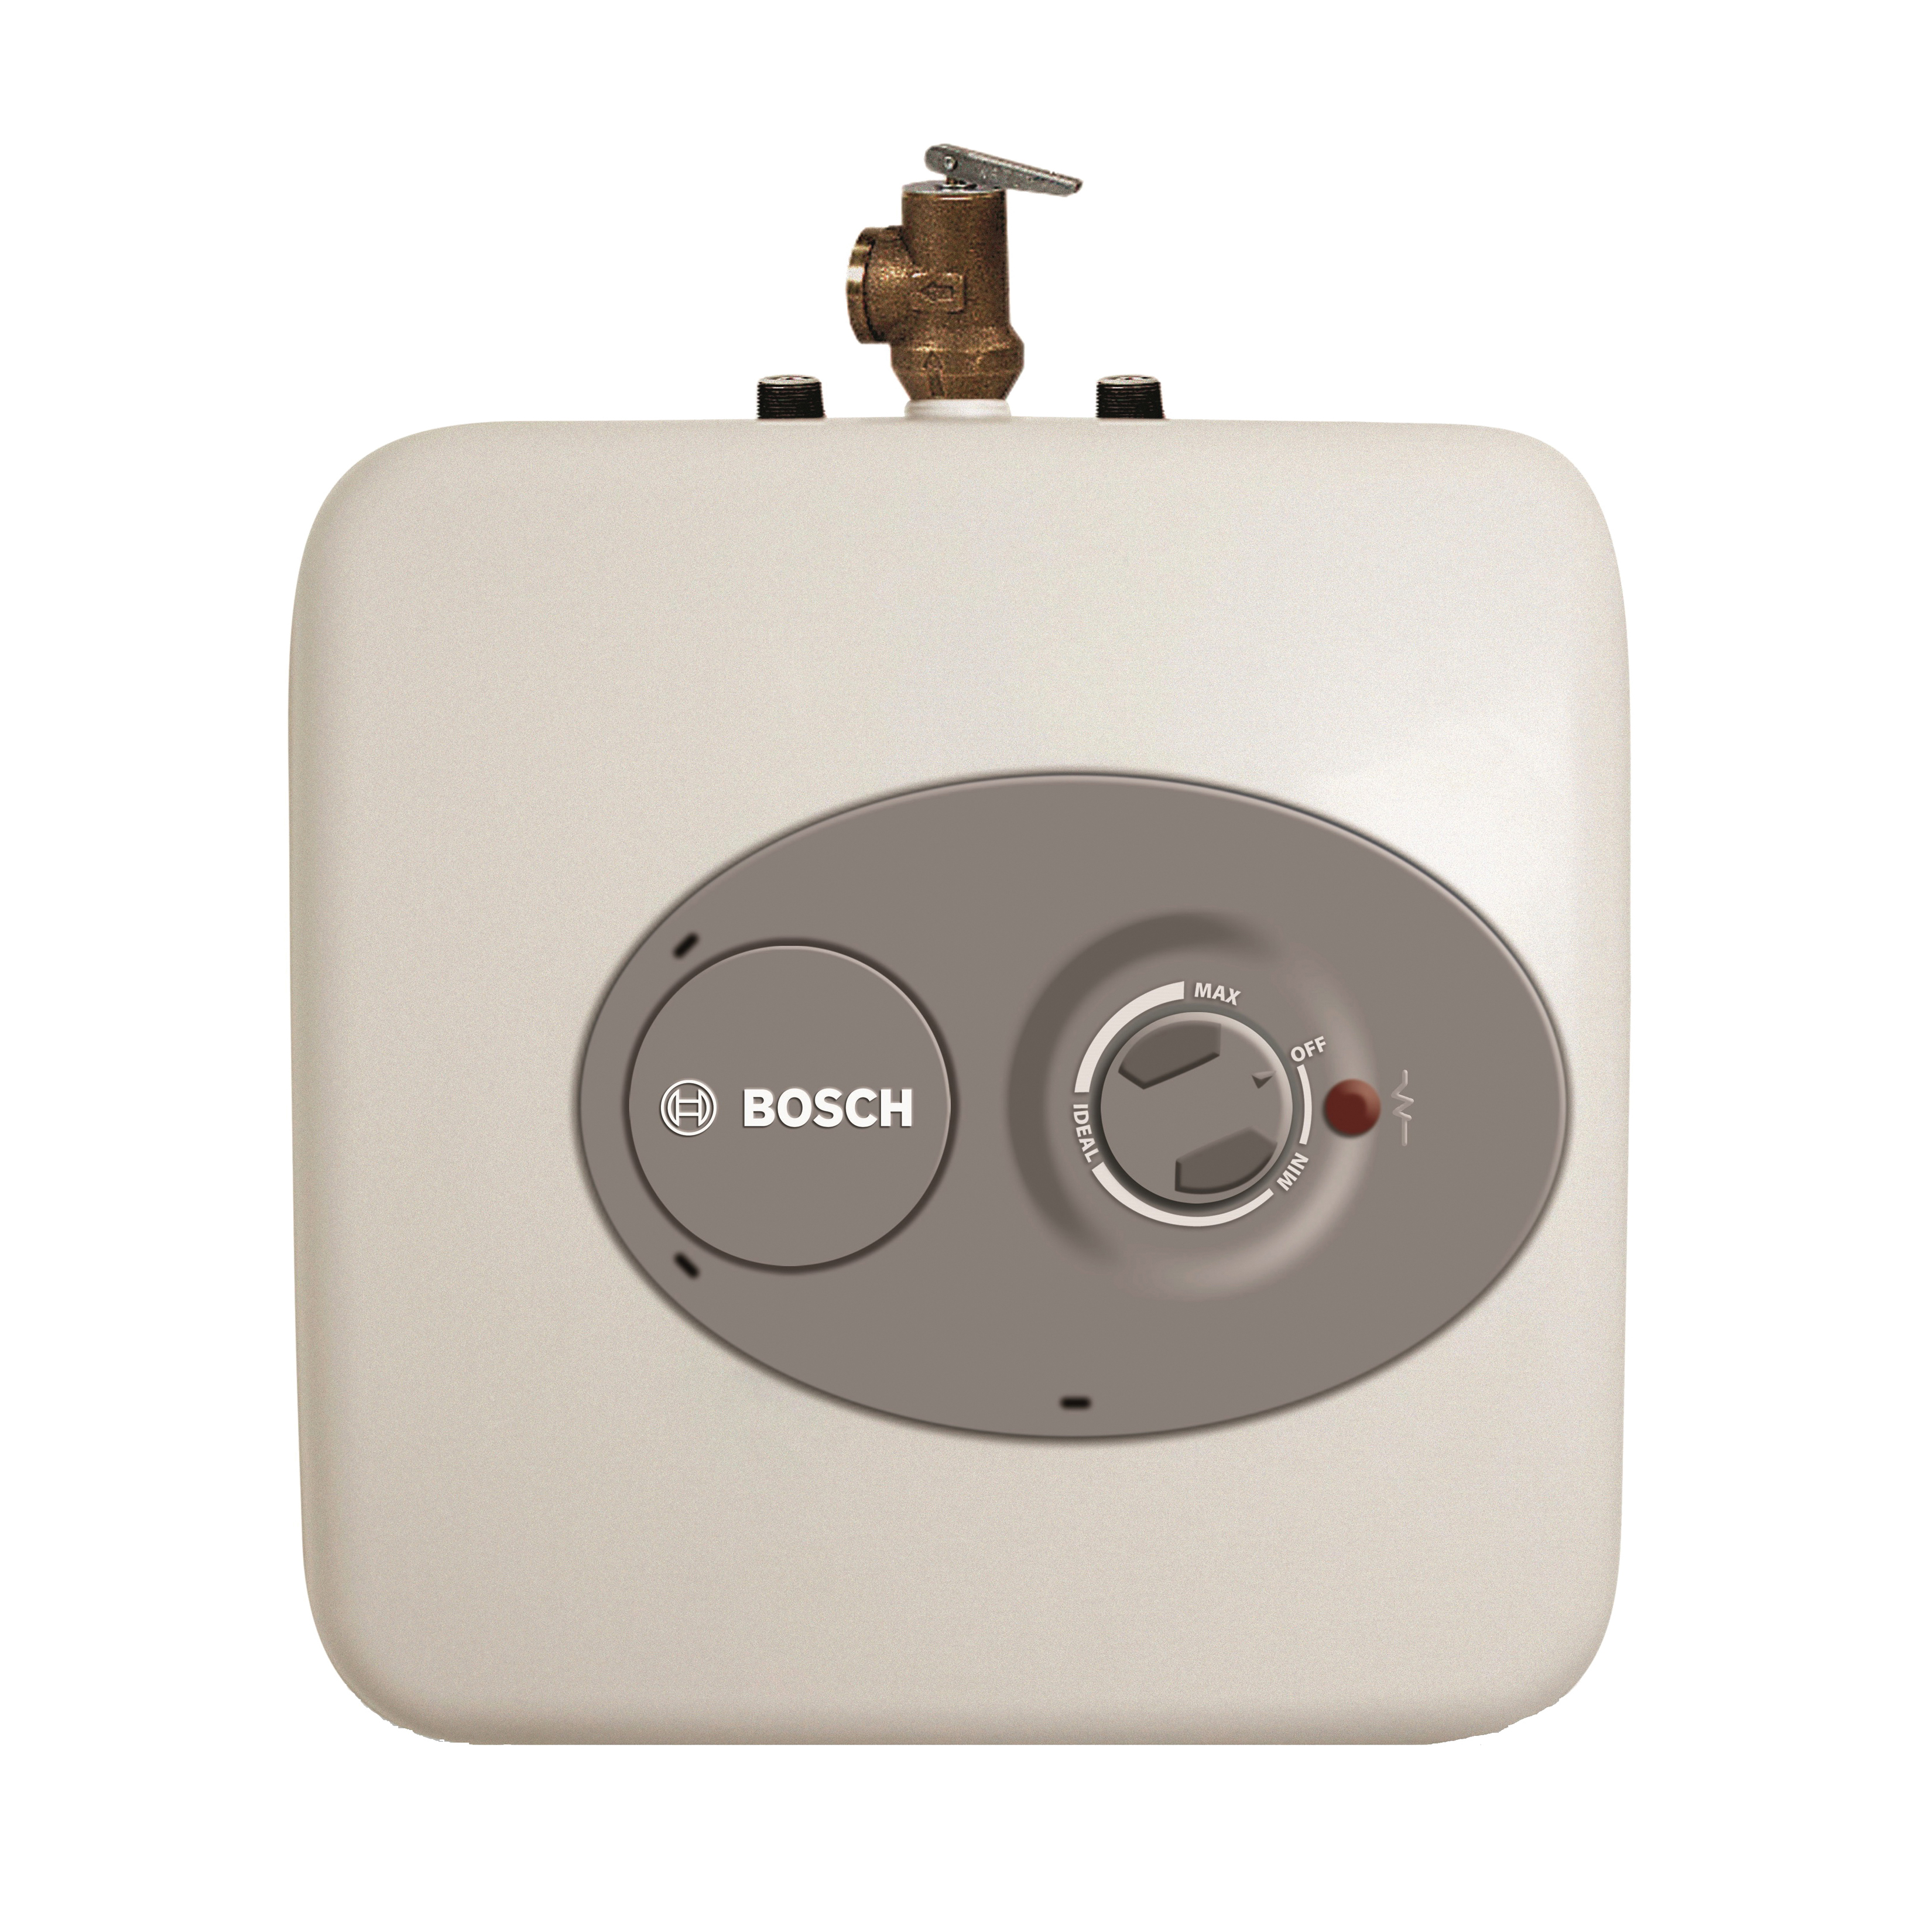 BOSCH THERMOTECHNOLOGY ES2.5